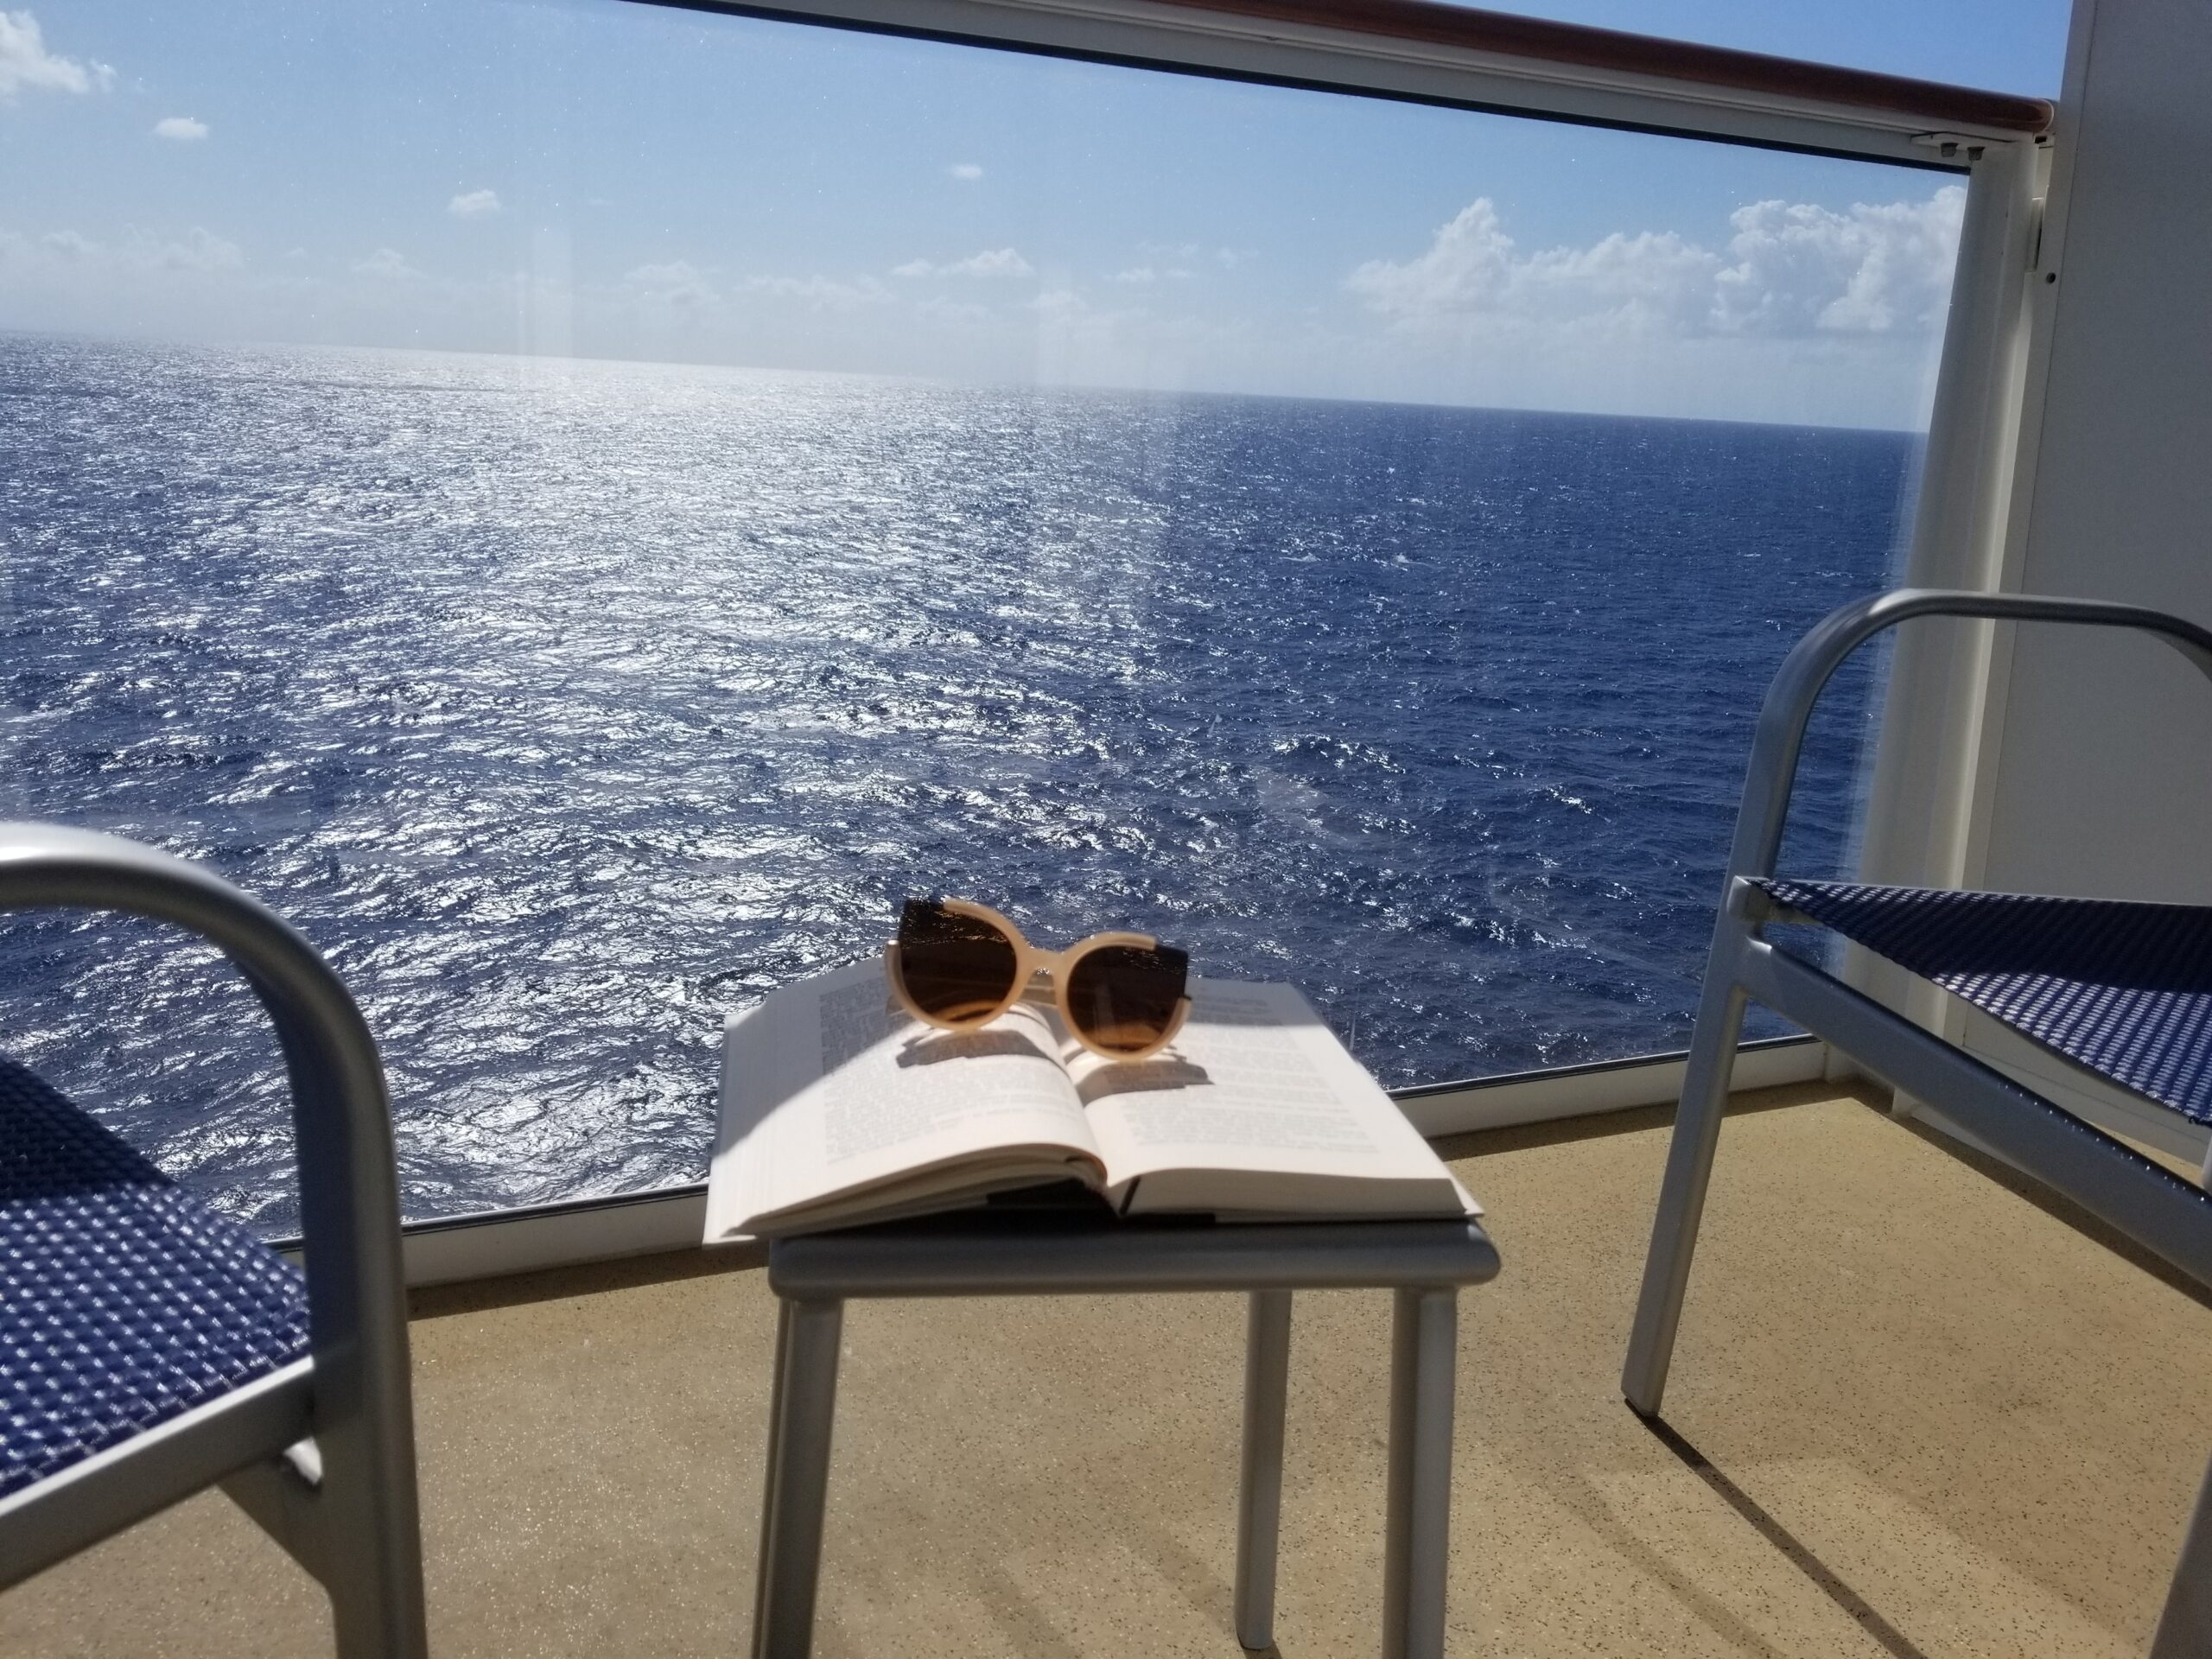 Reasons to Choose a Balcony Stateroom on a Cruise